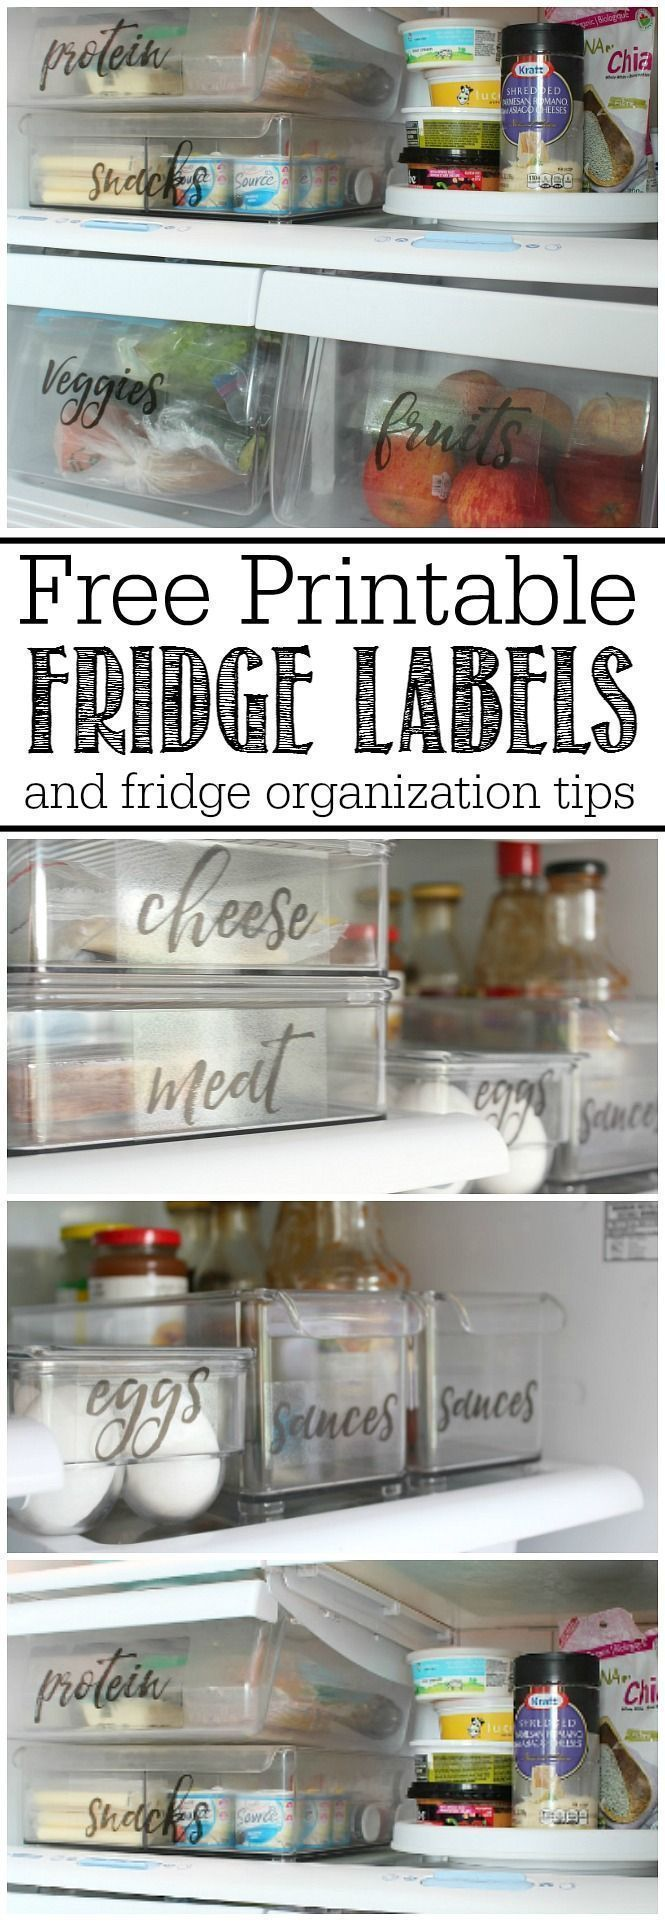 Get your fridge organized with these free downloadable fridge labels.